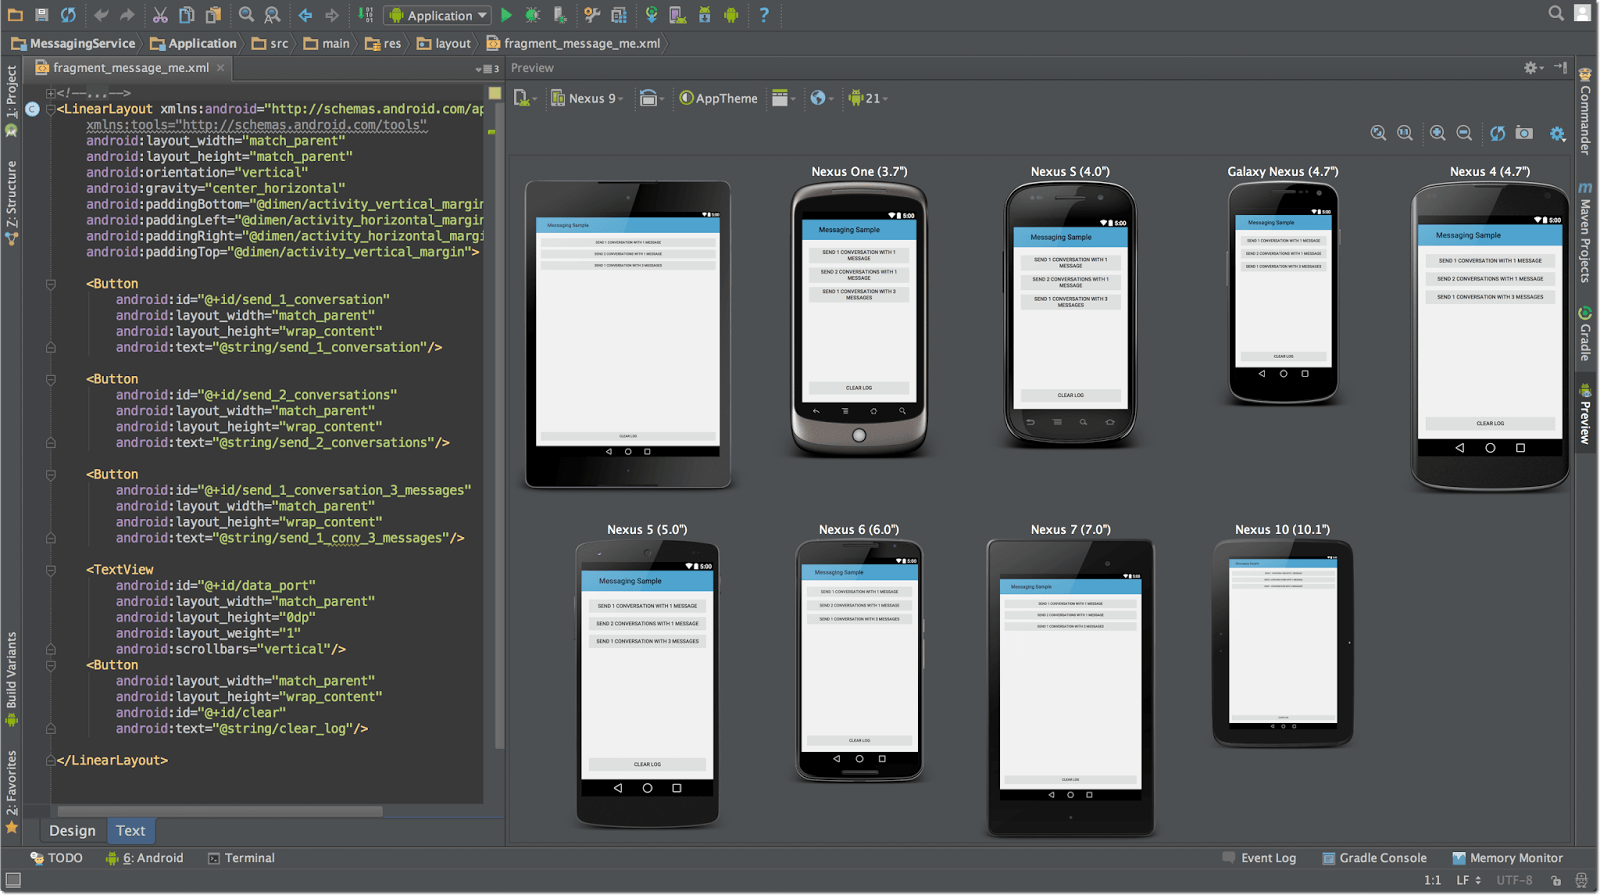 mobile-application-development-the-choice-of-ide-and-programming-language-including-cross-platform-framework-android-ide-android-studio-preview-2